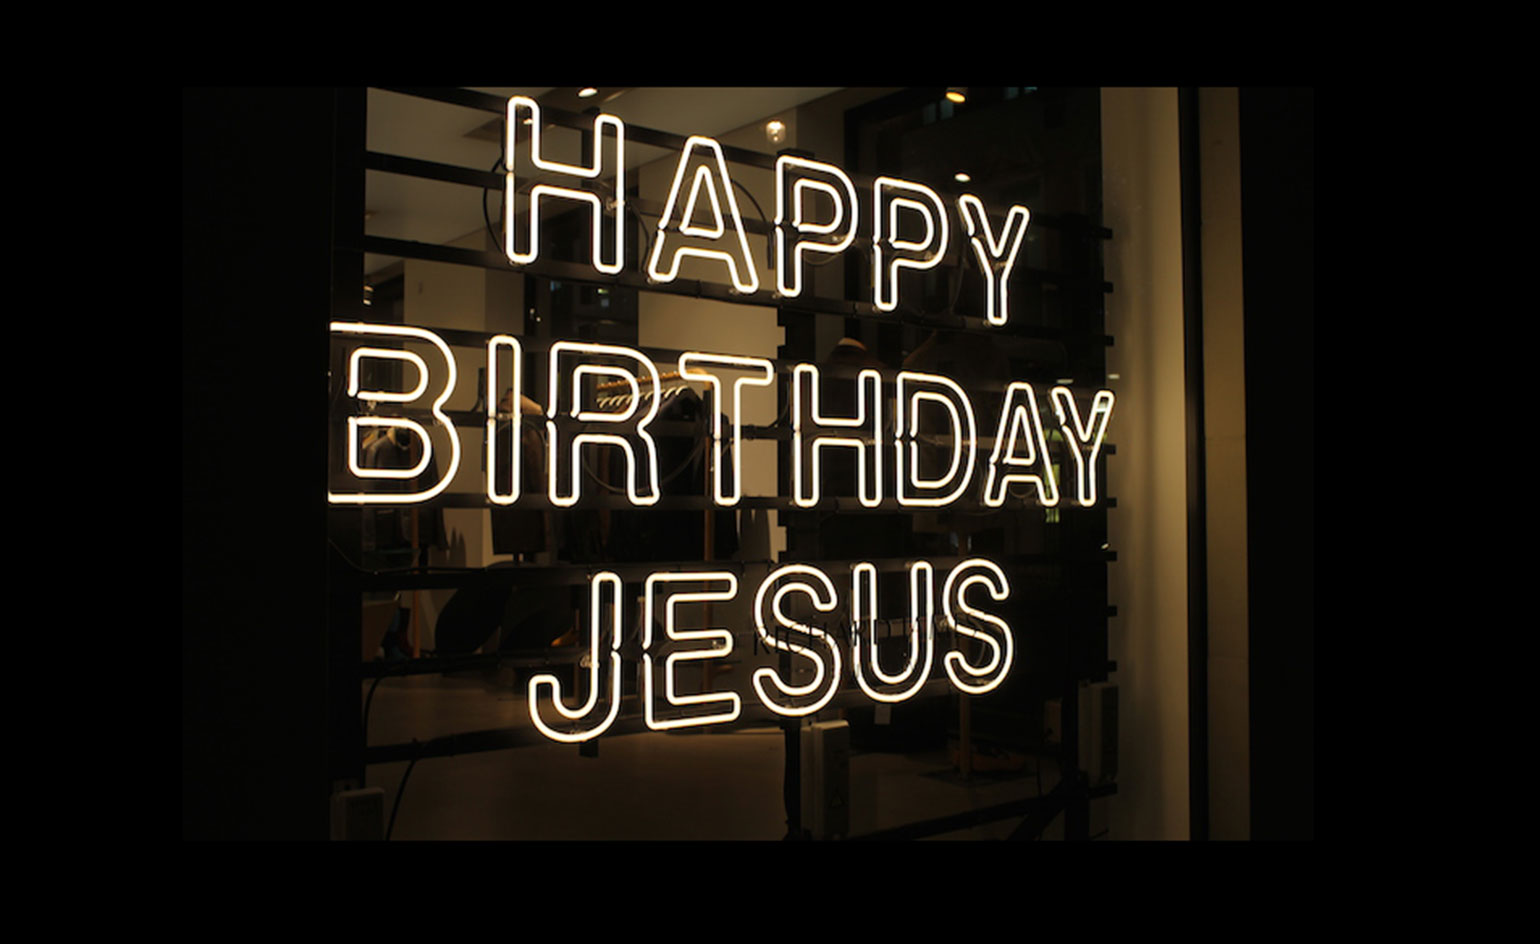 happybirthdayjesus.jpg